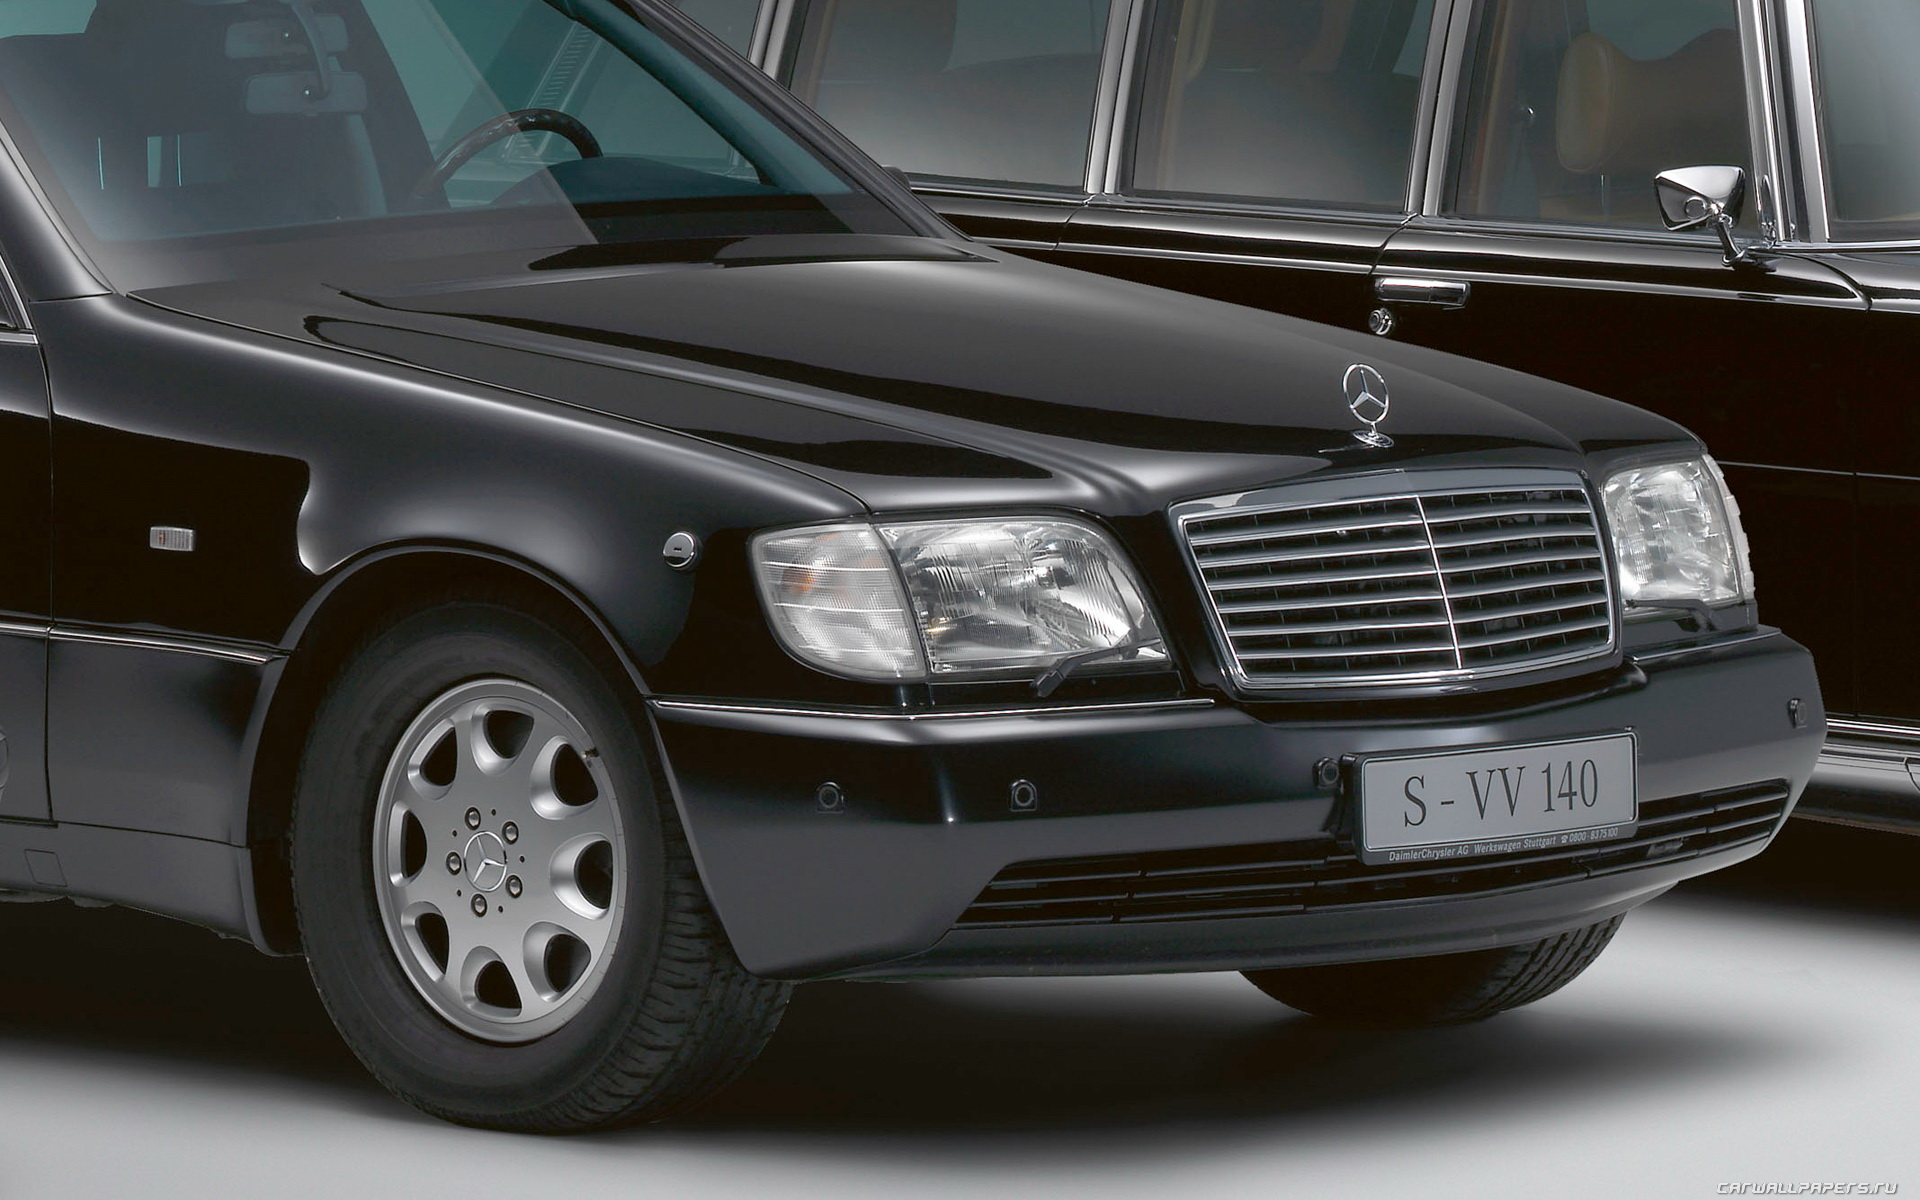 Benz s class w140 600sel or s600 m120 394 hp w140 information - Car Wallpapers Mercedes Benz S Class W140 Car Wallpapers Pictures Car